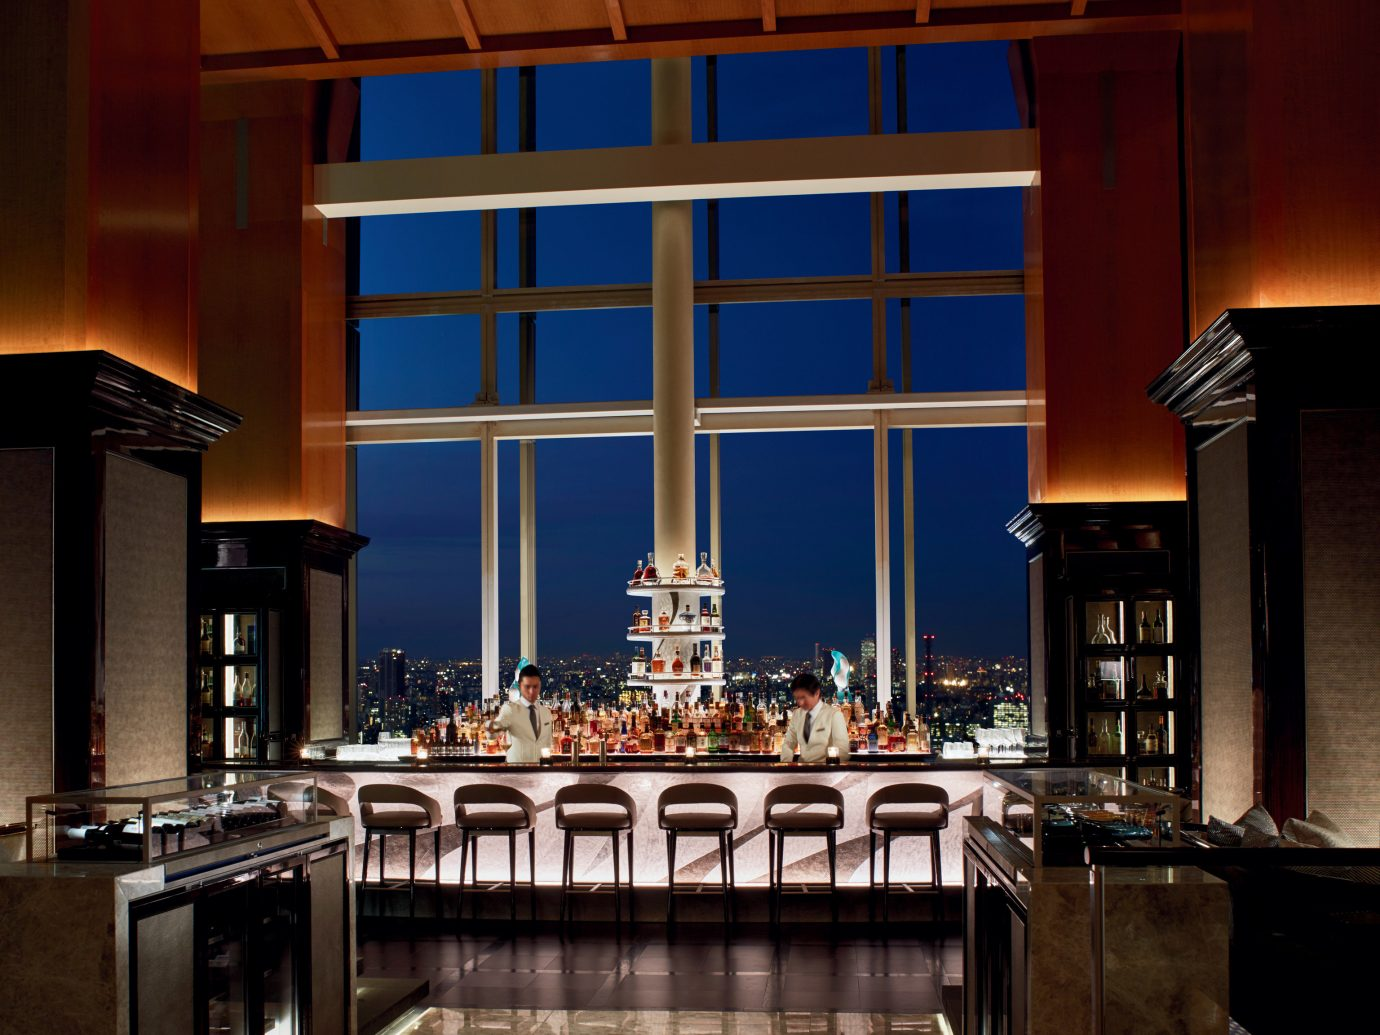 Hotels Japan Tokyo indoor window Architecture interior design estate lighting home Lobby Bar Island